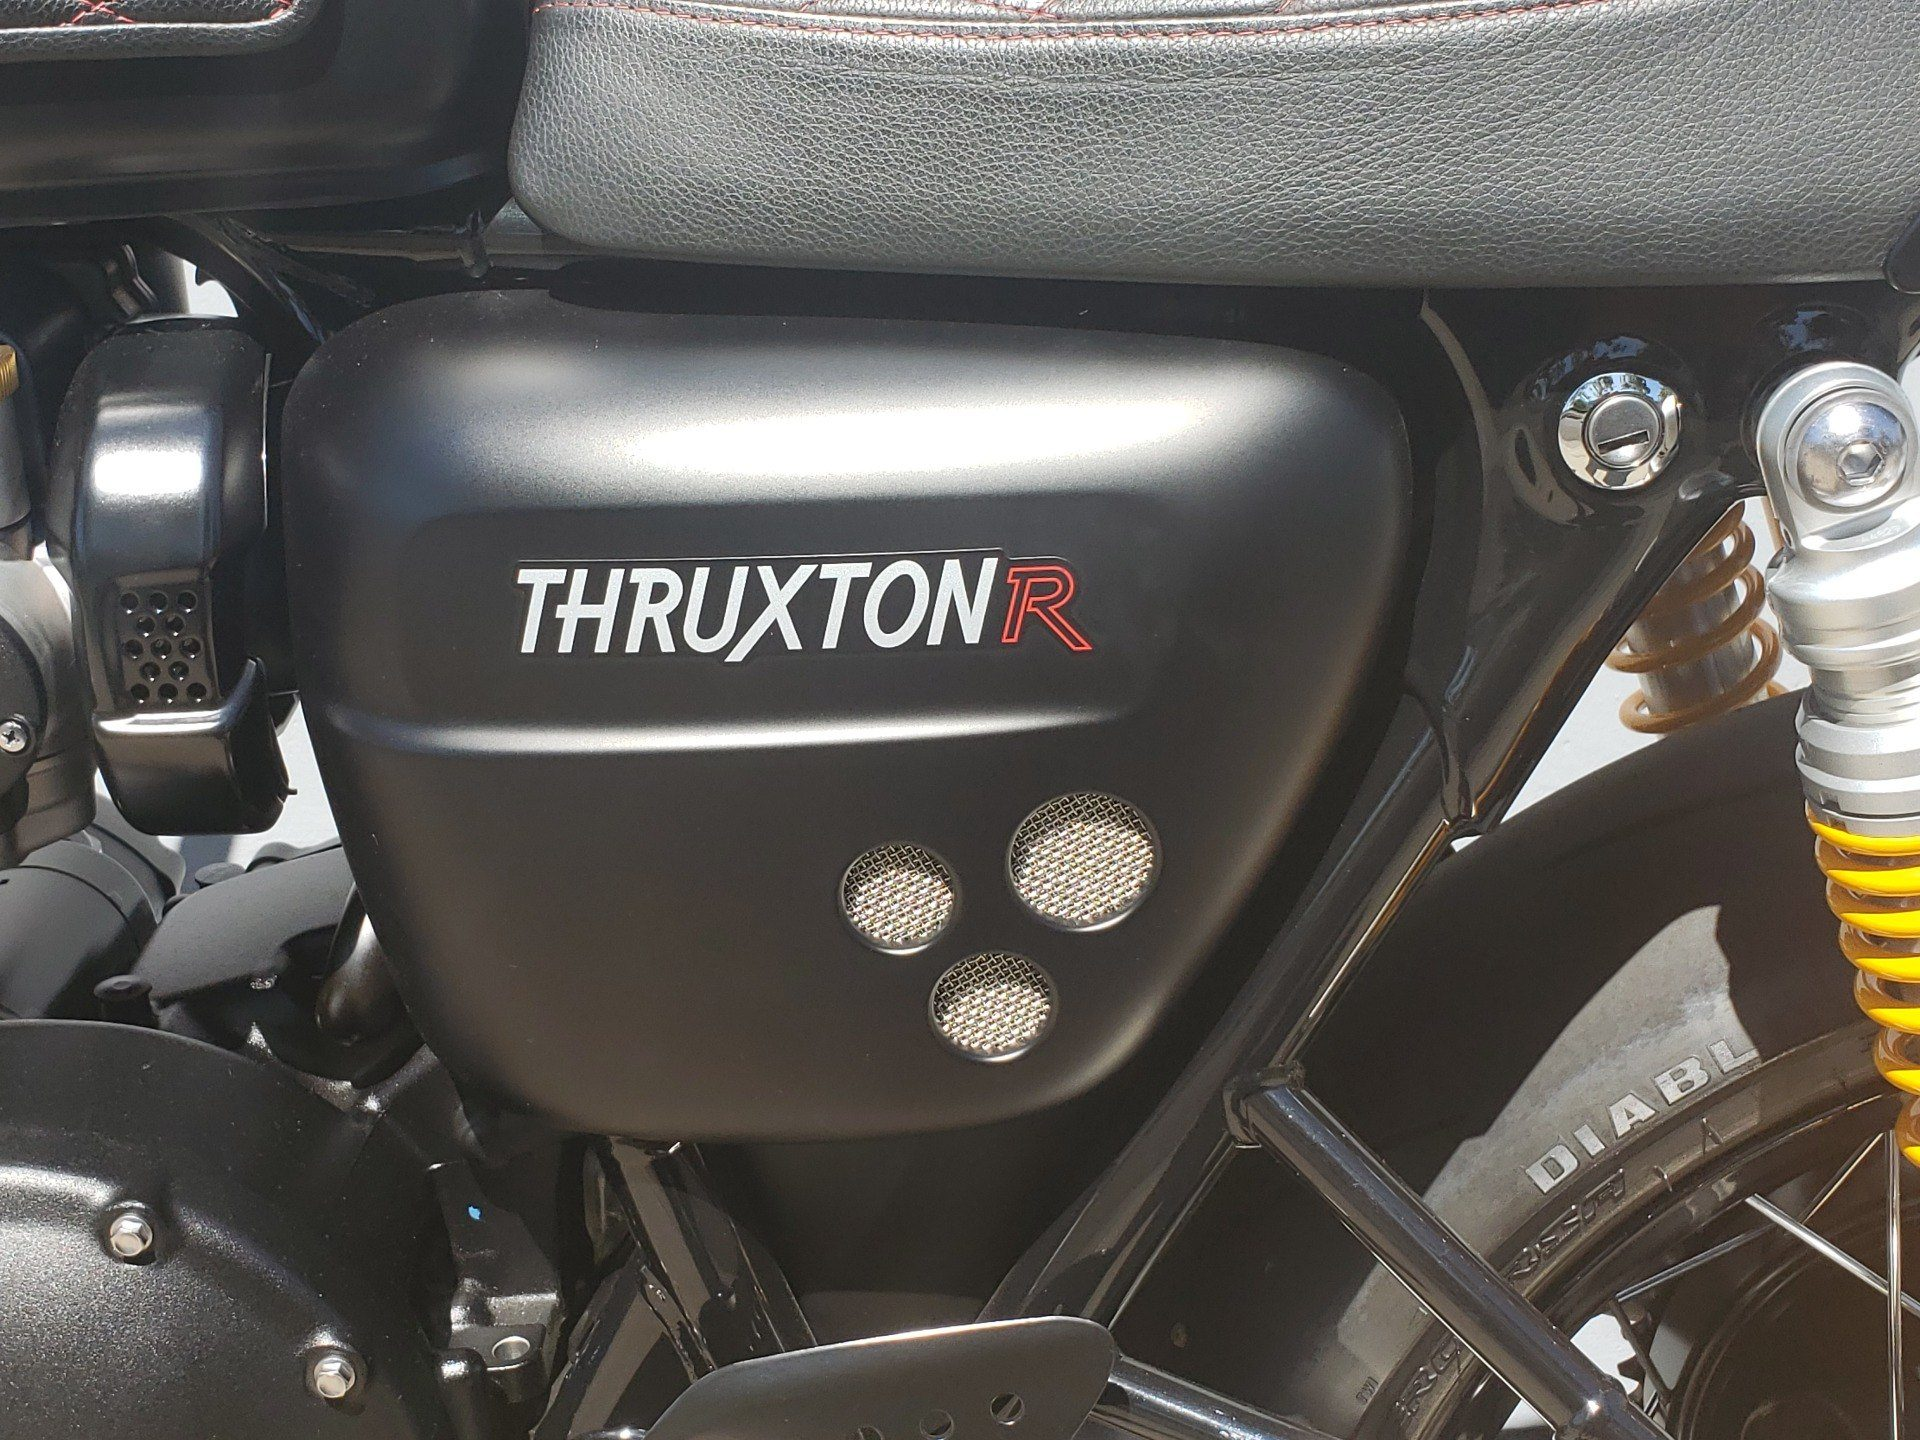 2017 Triumph Thruxton 1200 R in San Jose, California - Photo 6